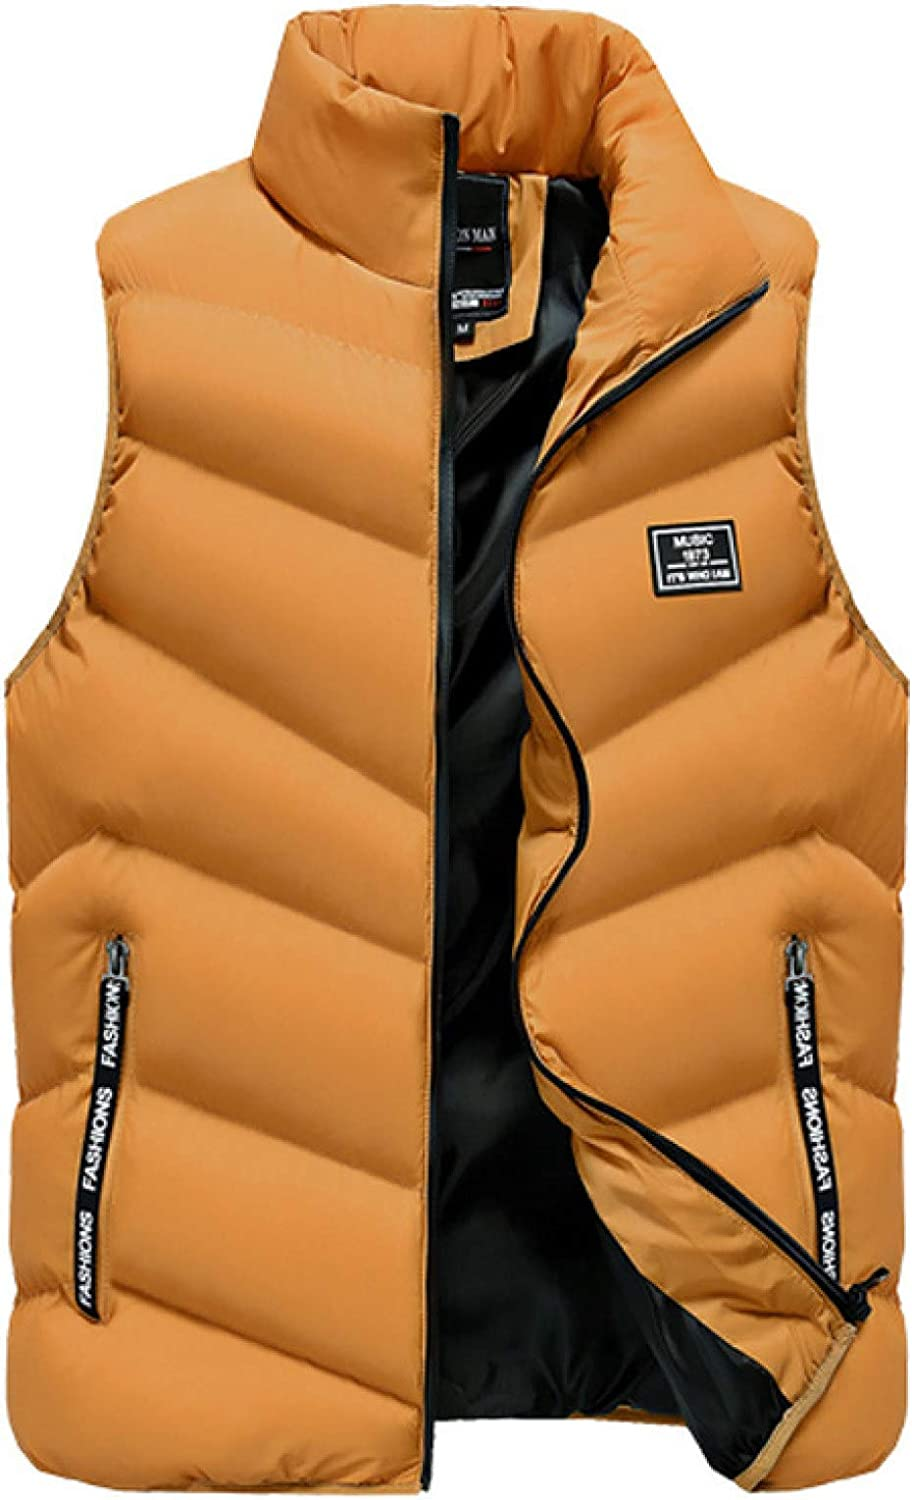 Men's Down Puffer Quilted Vest Outerwear Side Pockets Polyester Ultra Soft Sleeveless Jacket for Outdoor Travel